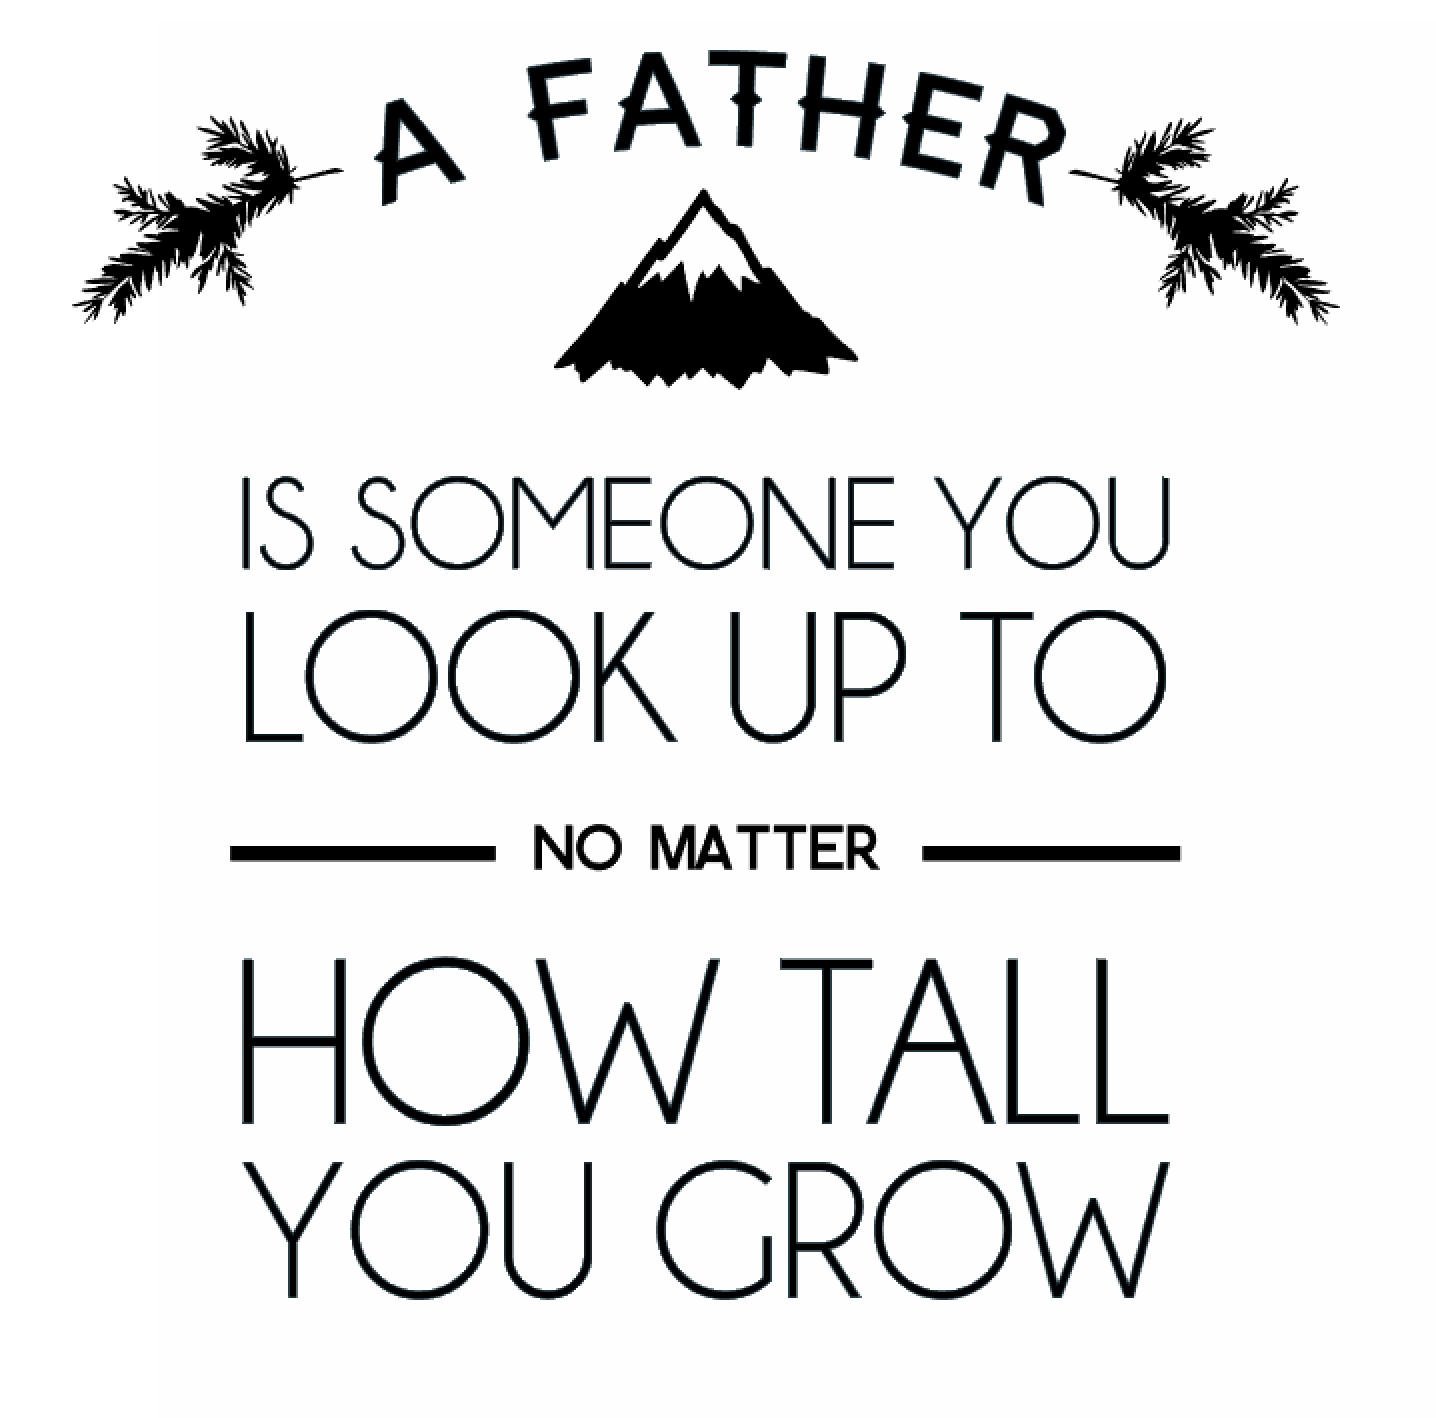 A father is someone you look up to